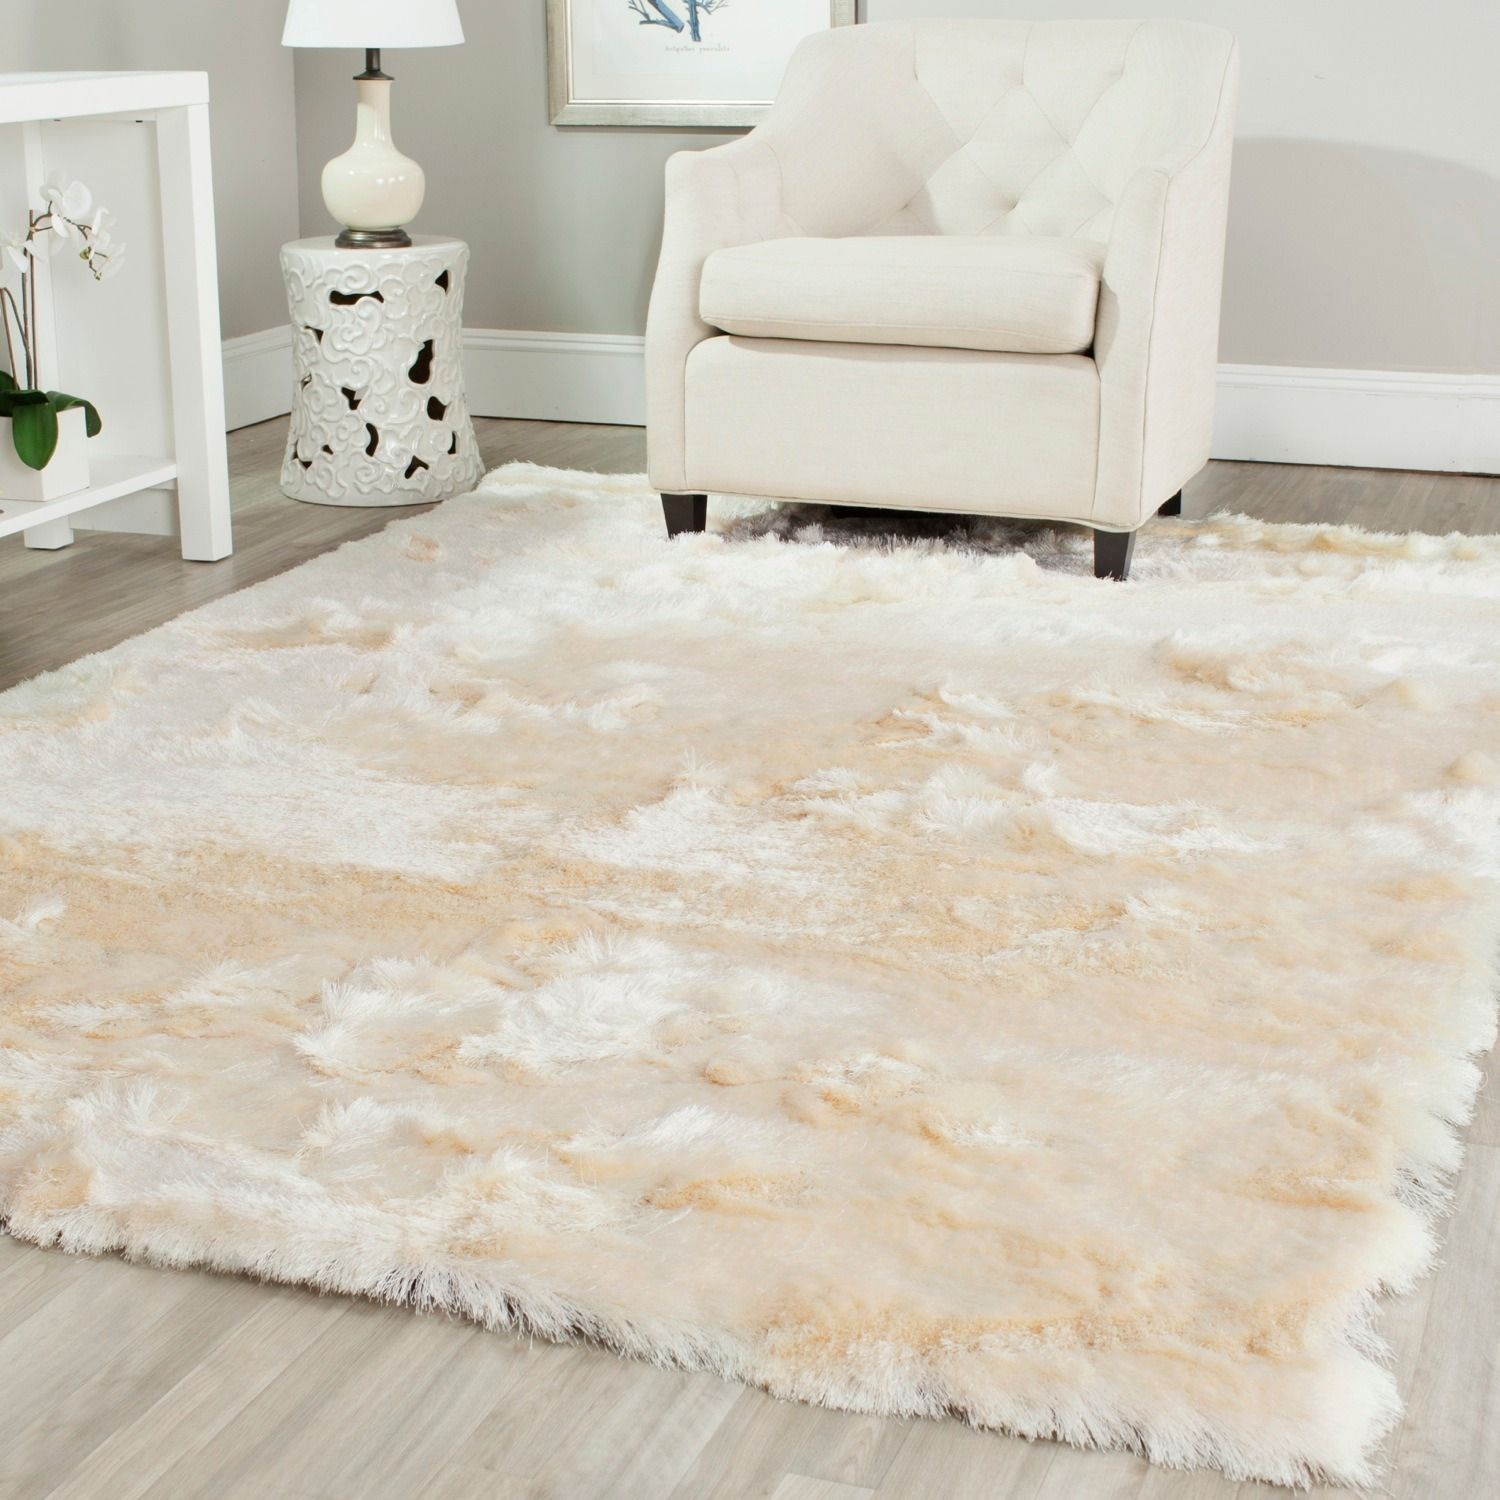 Luxurious deep silky soft pile makes this casual ivory shag rug